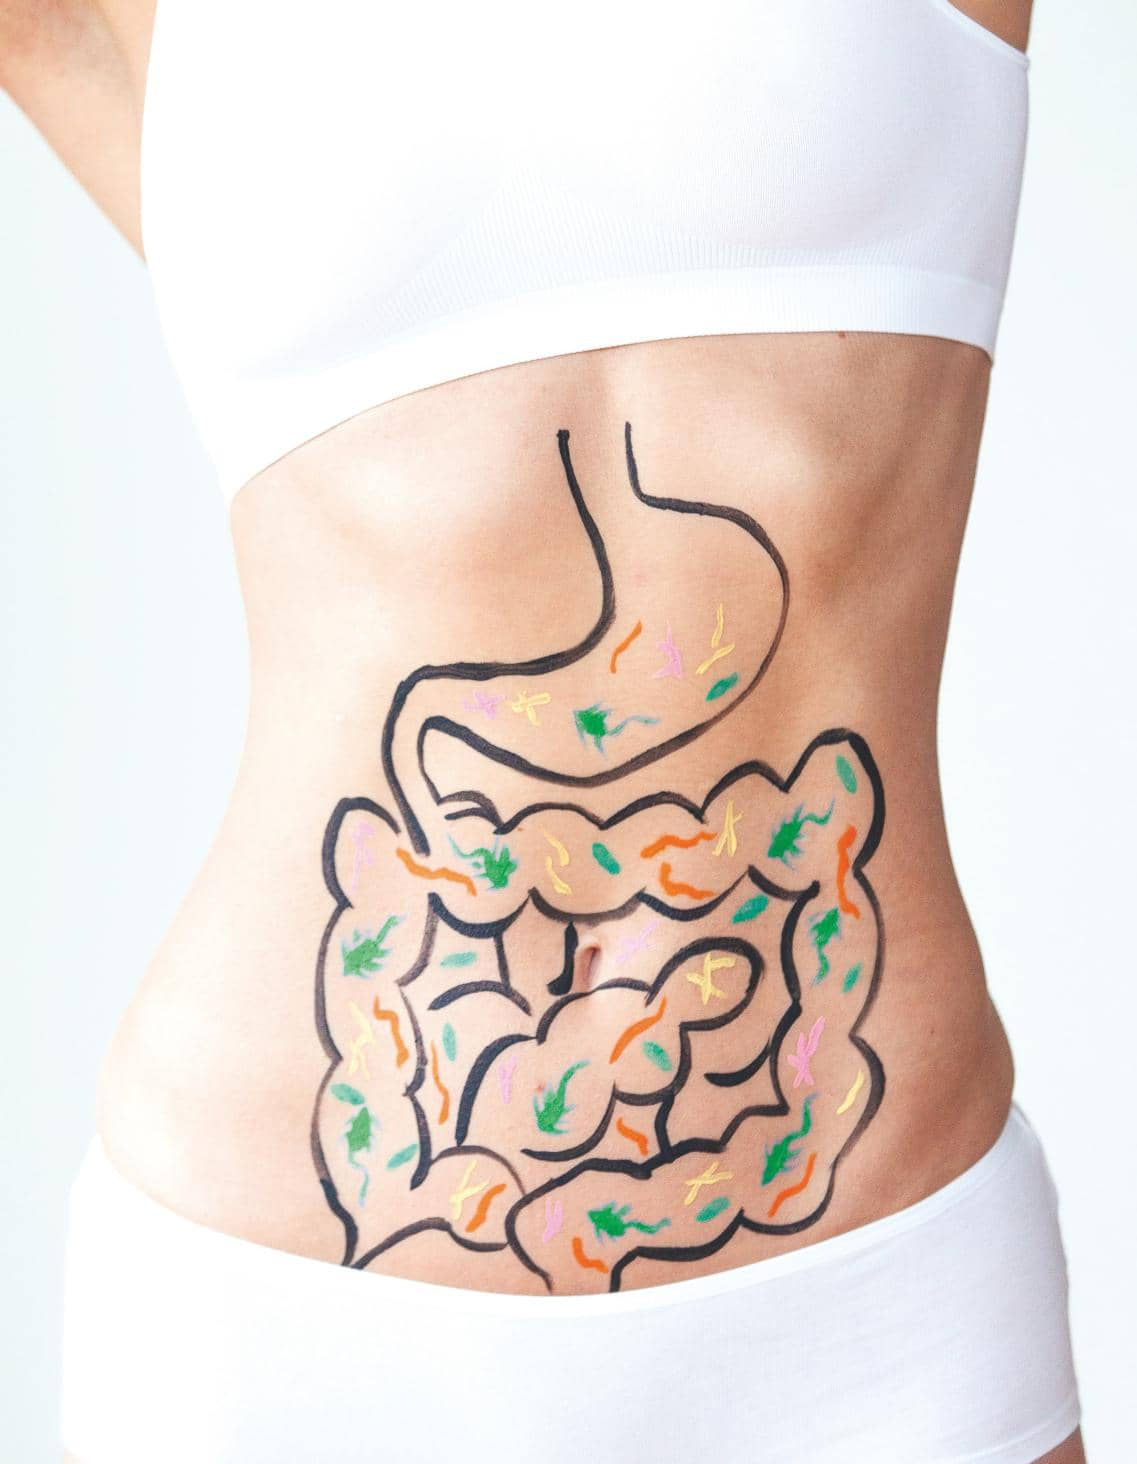 Does Your Gut Rule Your Head?